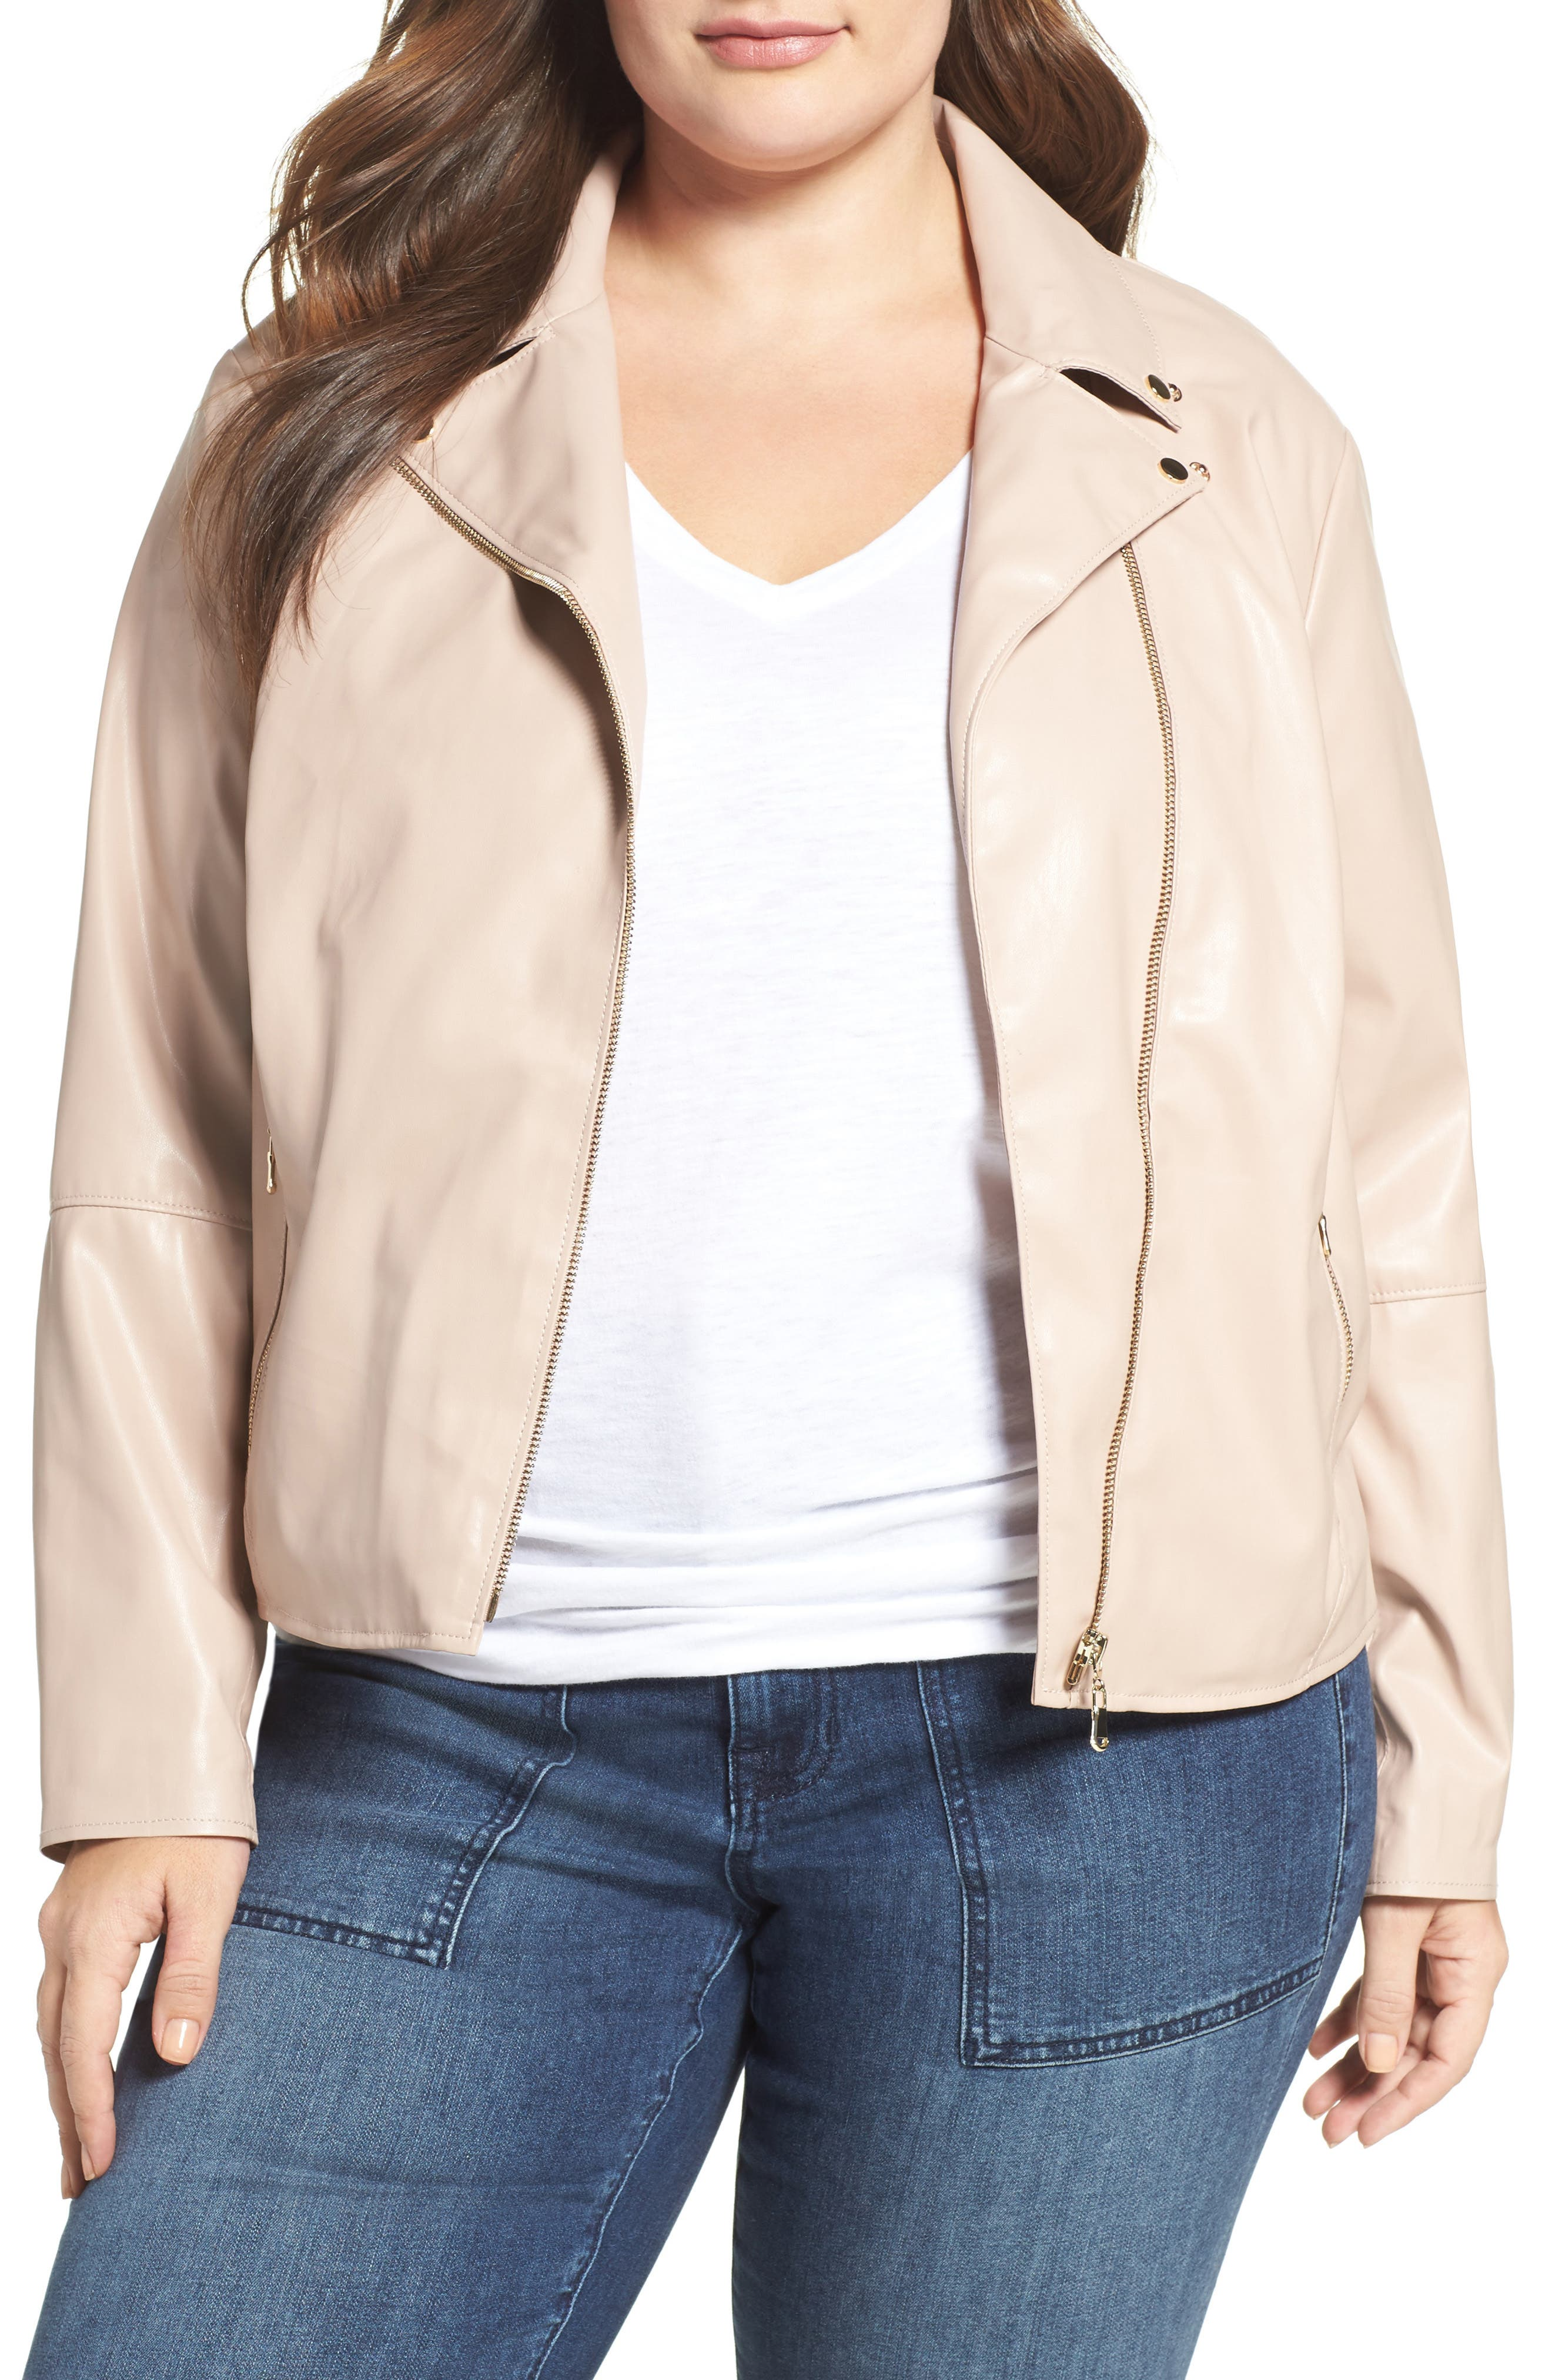 Alternate Image 1 Selected - Tart Mollie Faux Leather Jacket (Plus Size)